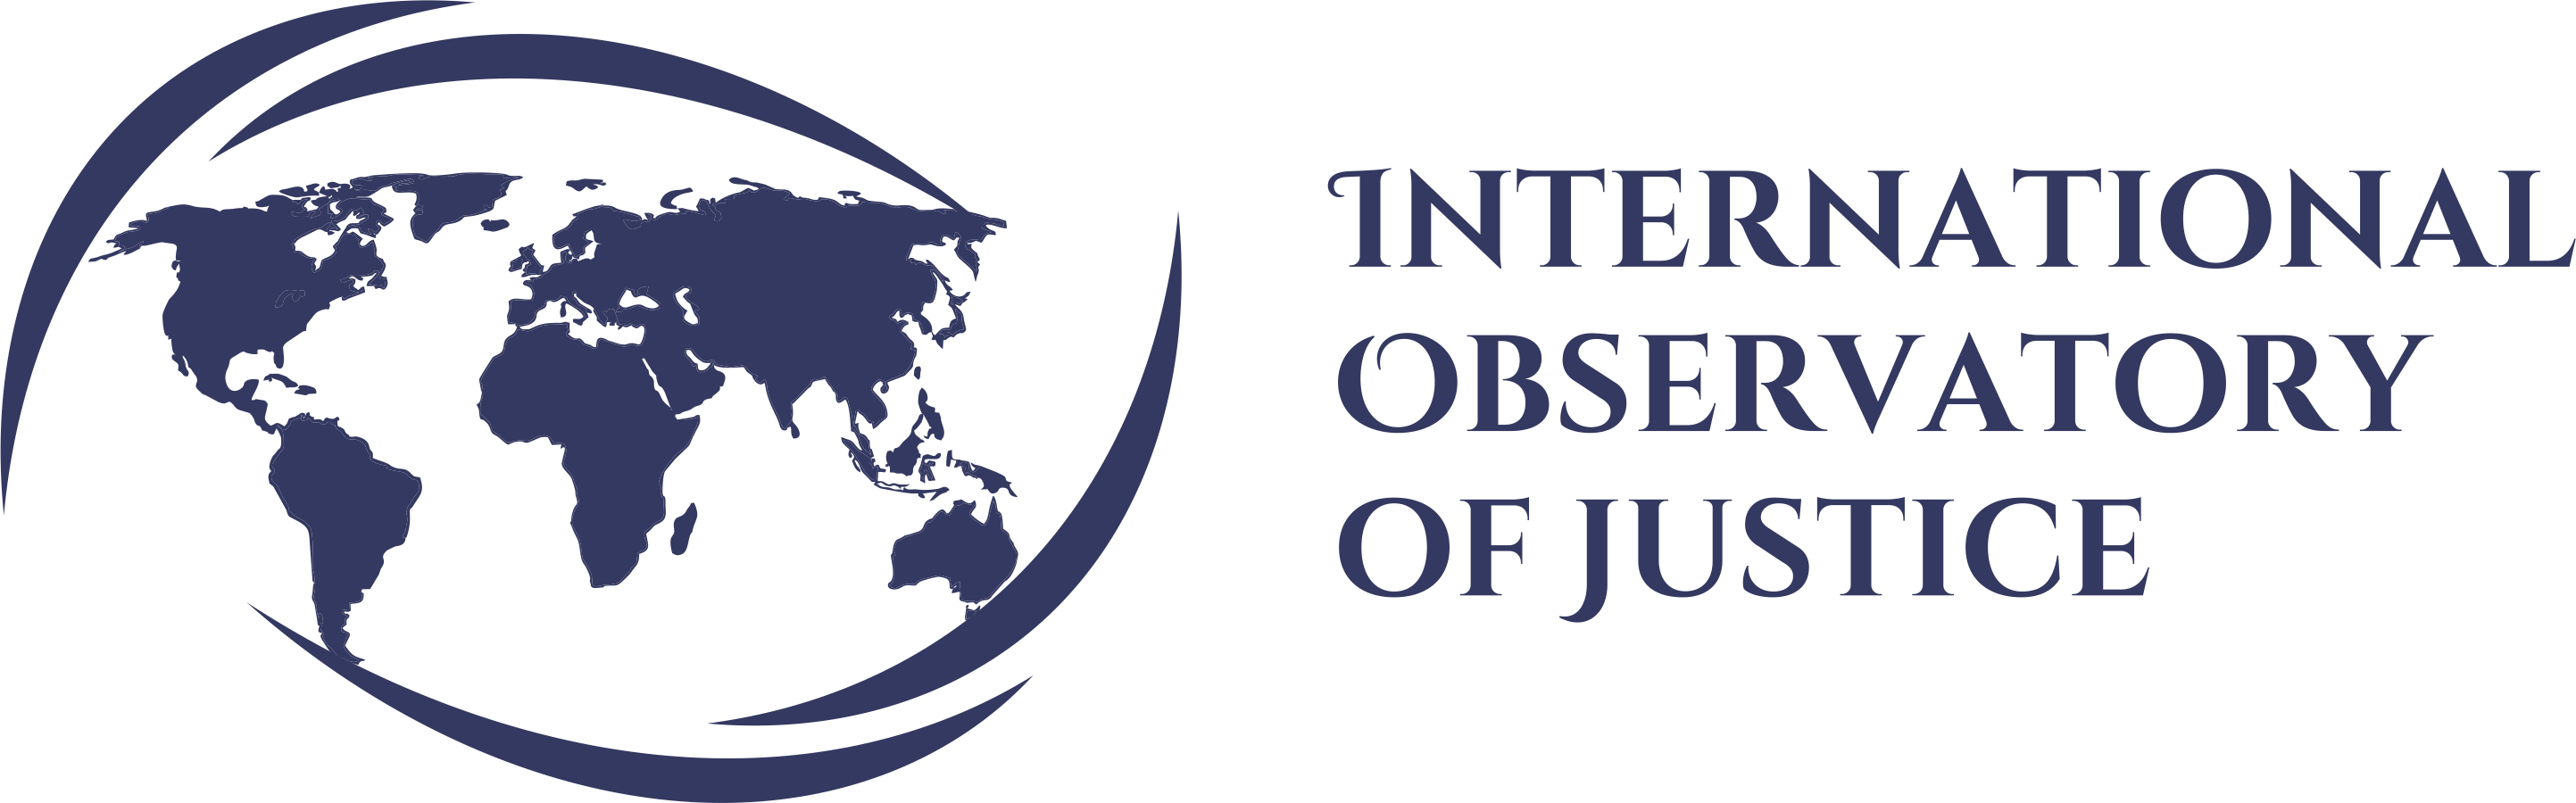 International Observatory of Justice